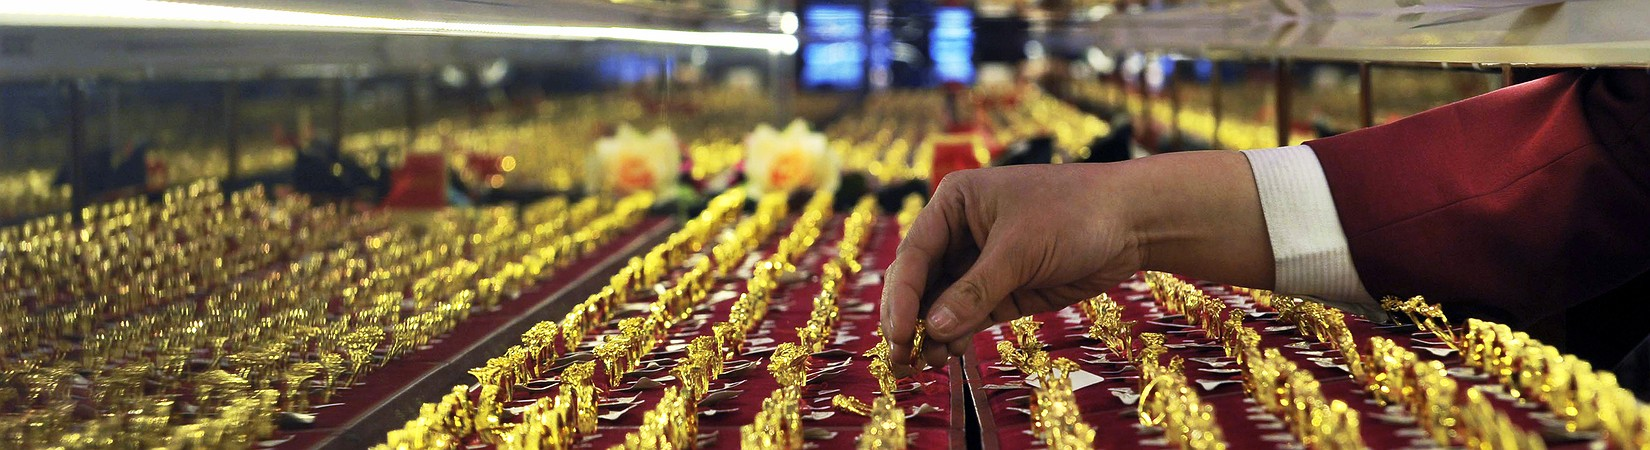 $22b gold deposit discovered in China